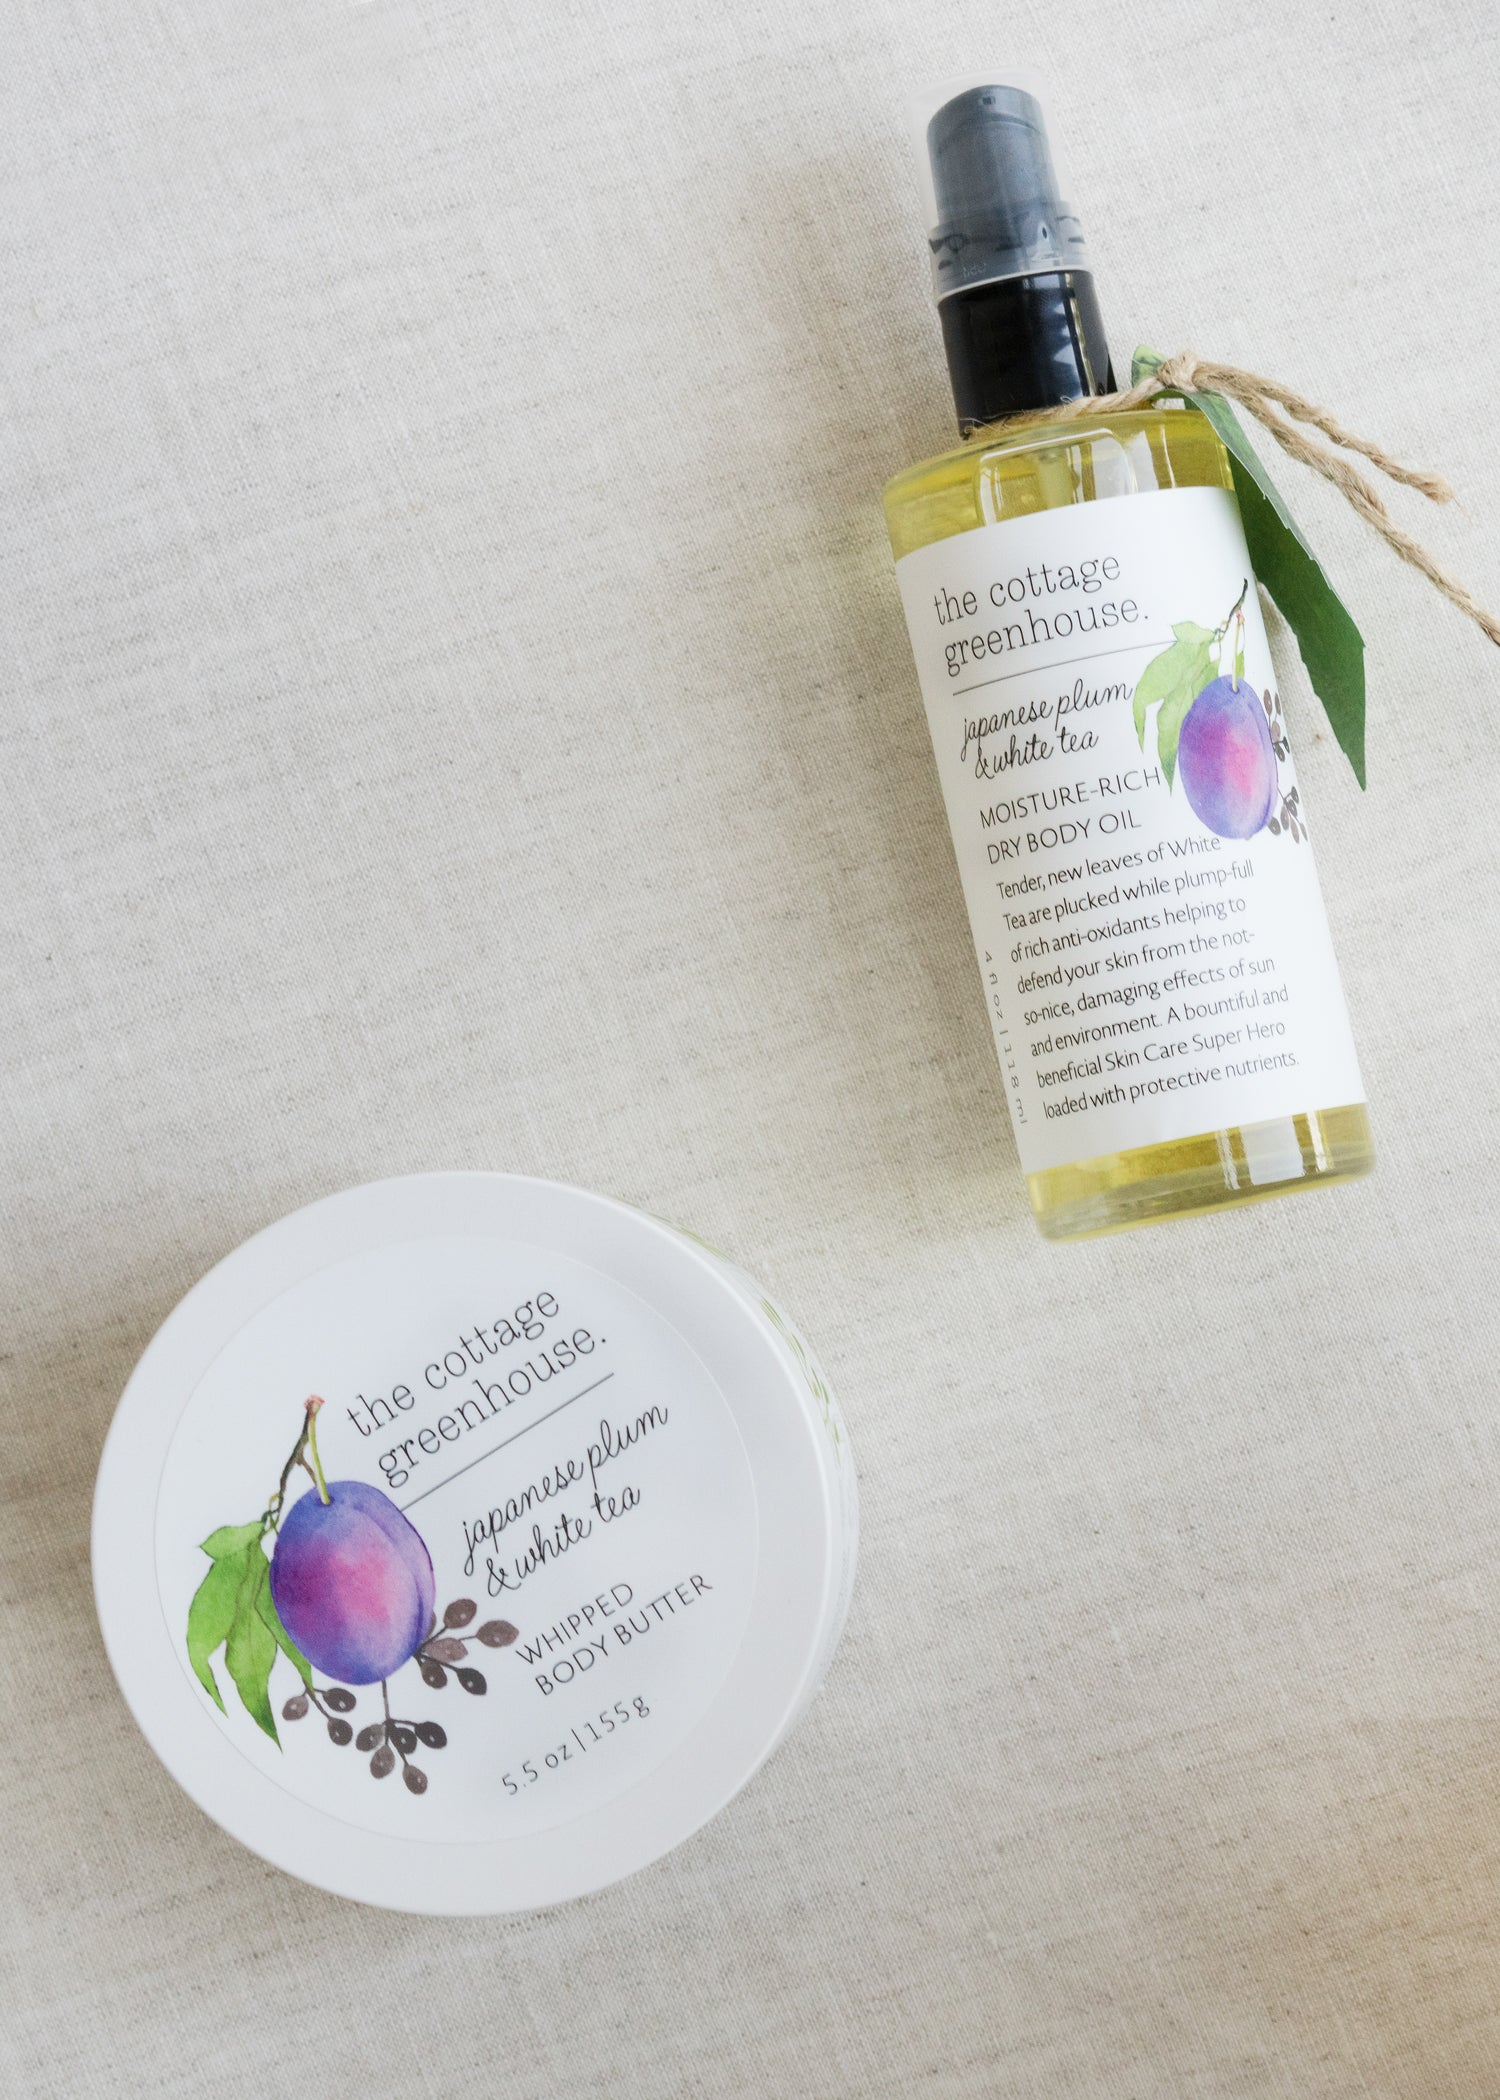 Japanese Plum Body Butter & Dry Body Oil Duo